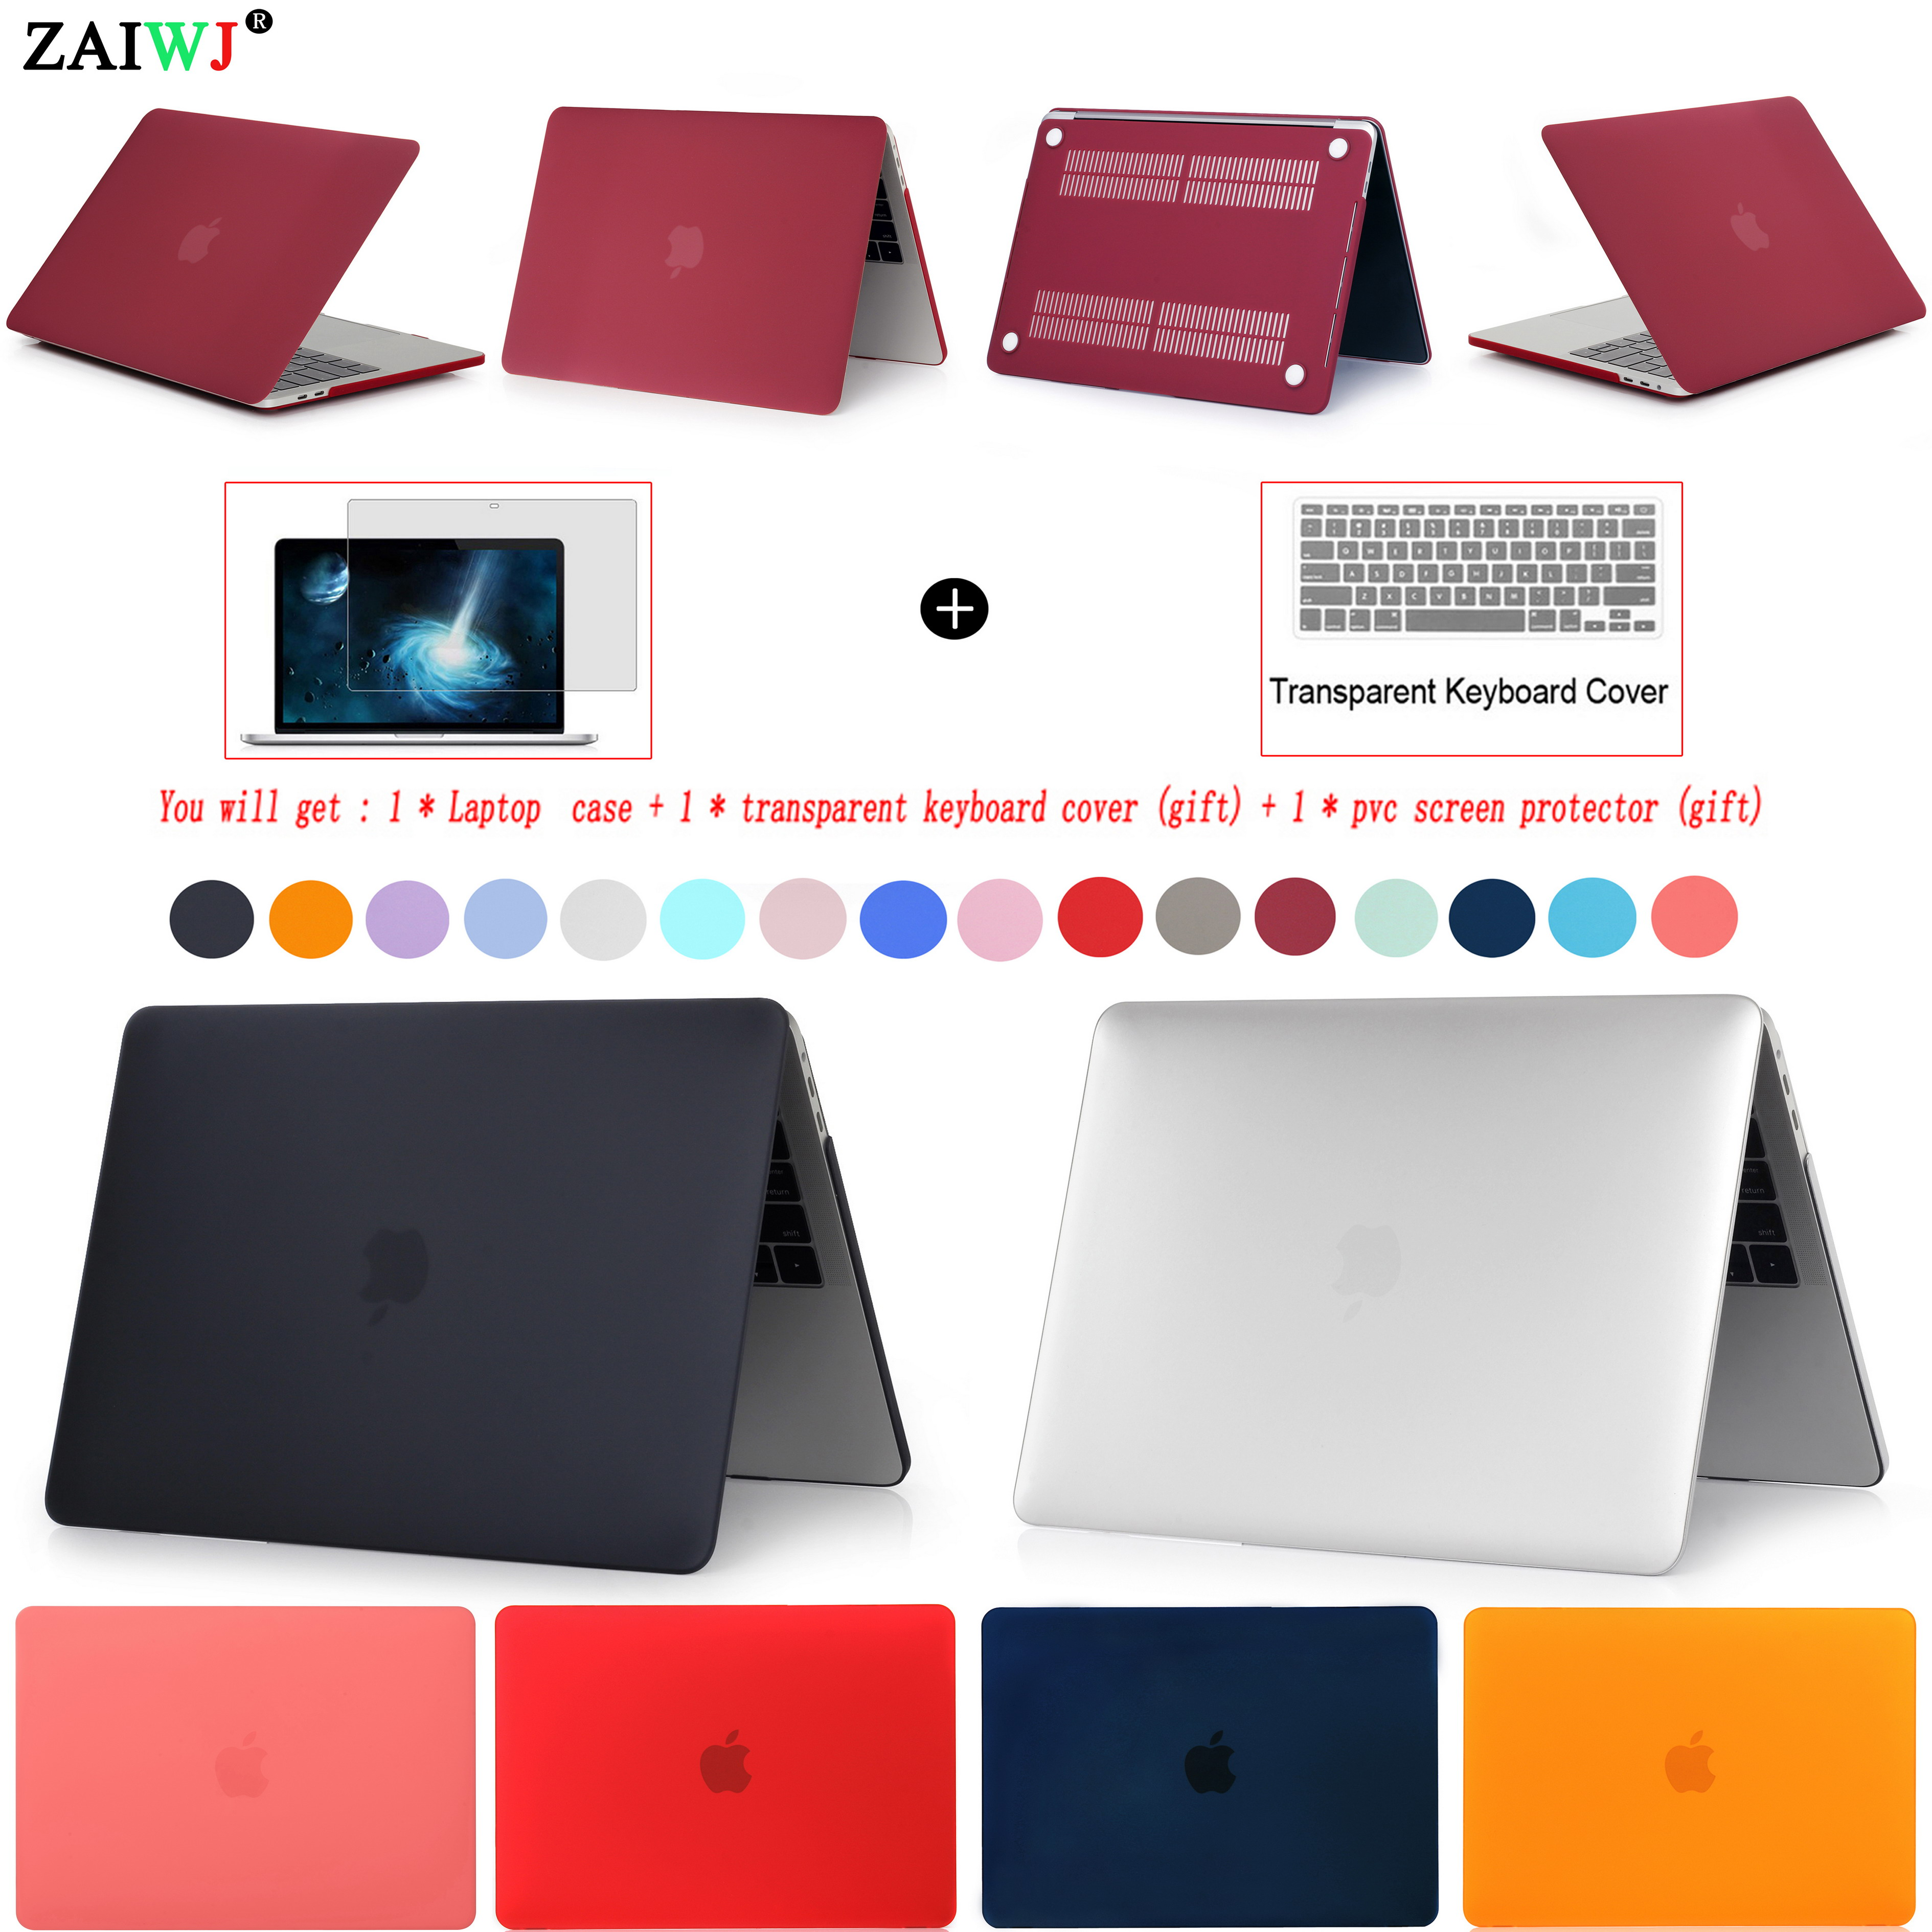 New Laptop Case For MacBook Air Pro Retina 11 12 13 15 For Mac 13.3 15.4 16 Inch With Touch Bar ID A2159 A2141 Keyboard Cover